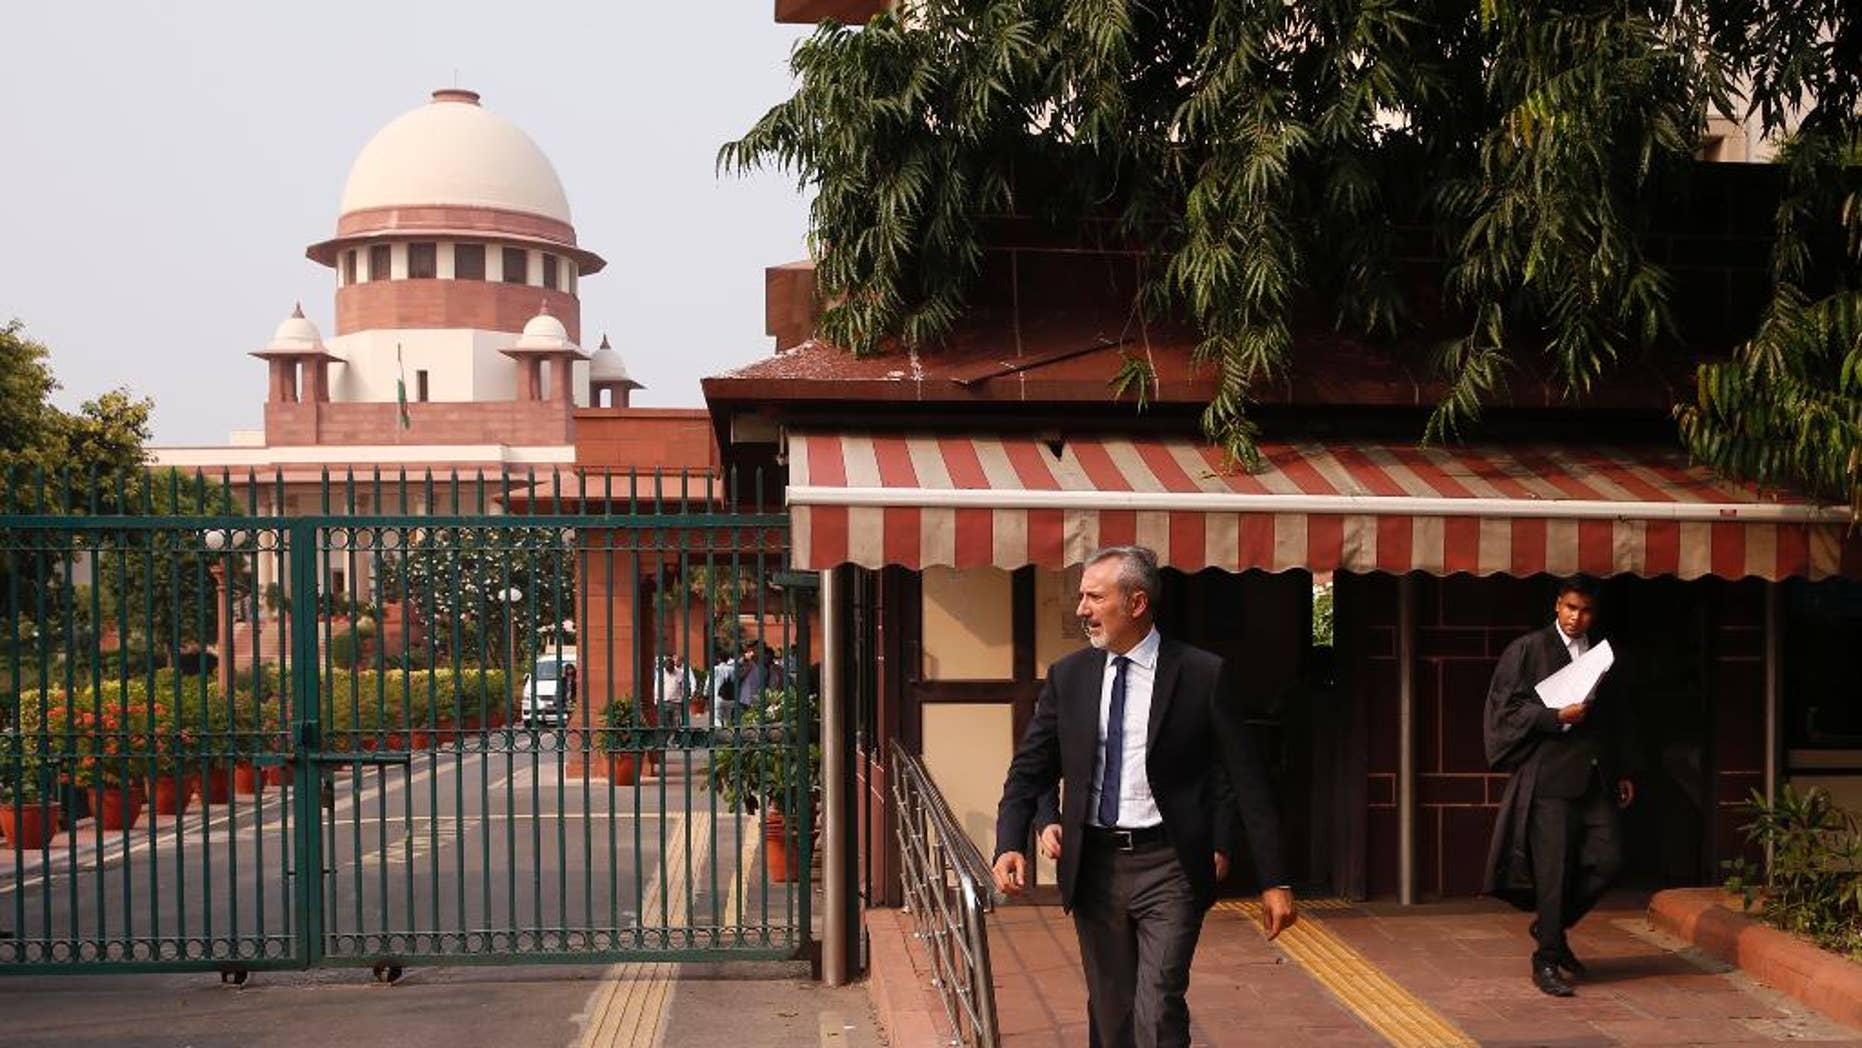 Italian ambassador to India Lorenzo Angeloni walks out of the Supreme Court in New Delhi, India, Tuesday, Sept. 20, 2016. The court was to decide on a plea to let Italian marine Massimiliano Latorre be allowed to remain in Italy till an international tribunal decides on the jurisdiction of the case. The court posted the matter for further hearing on Sept. 28. (AP Photo/Saurabh Das)